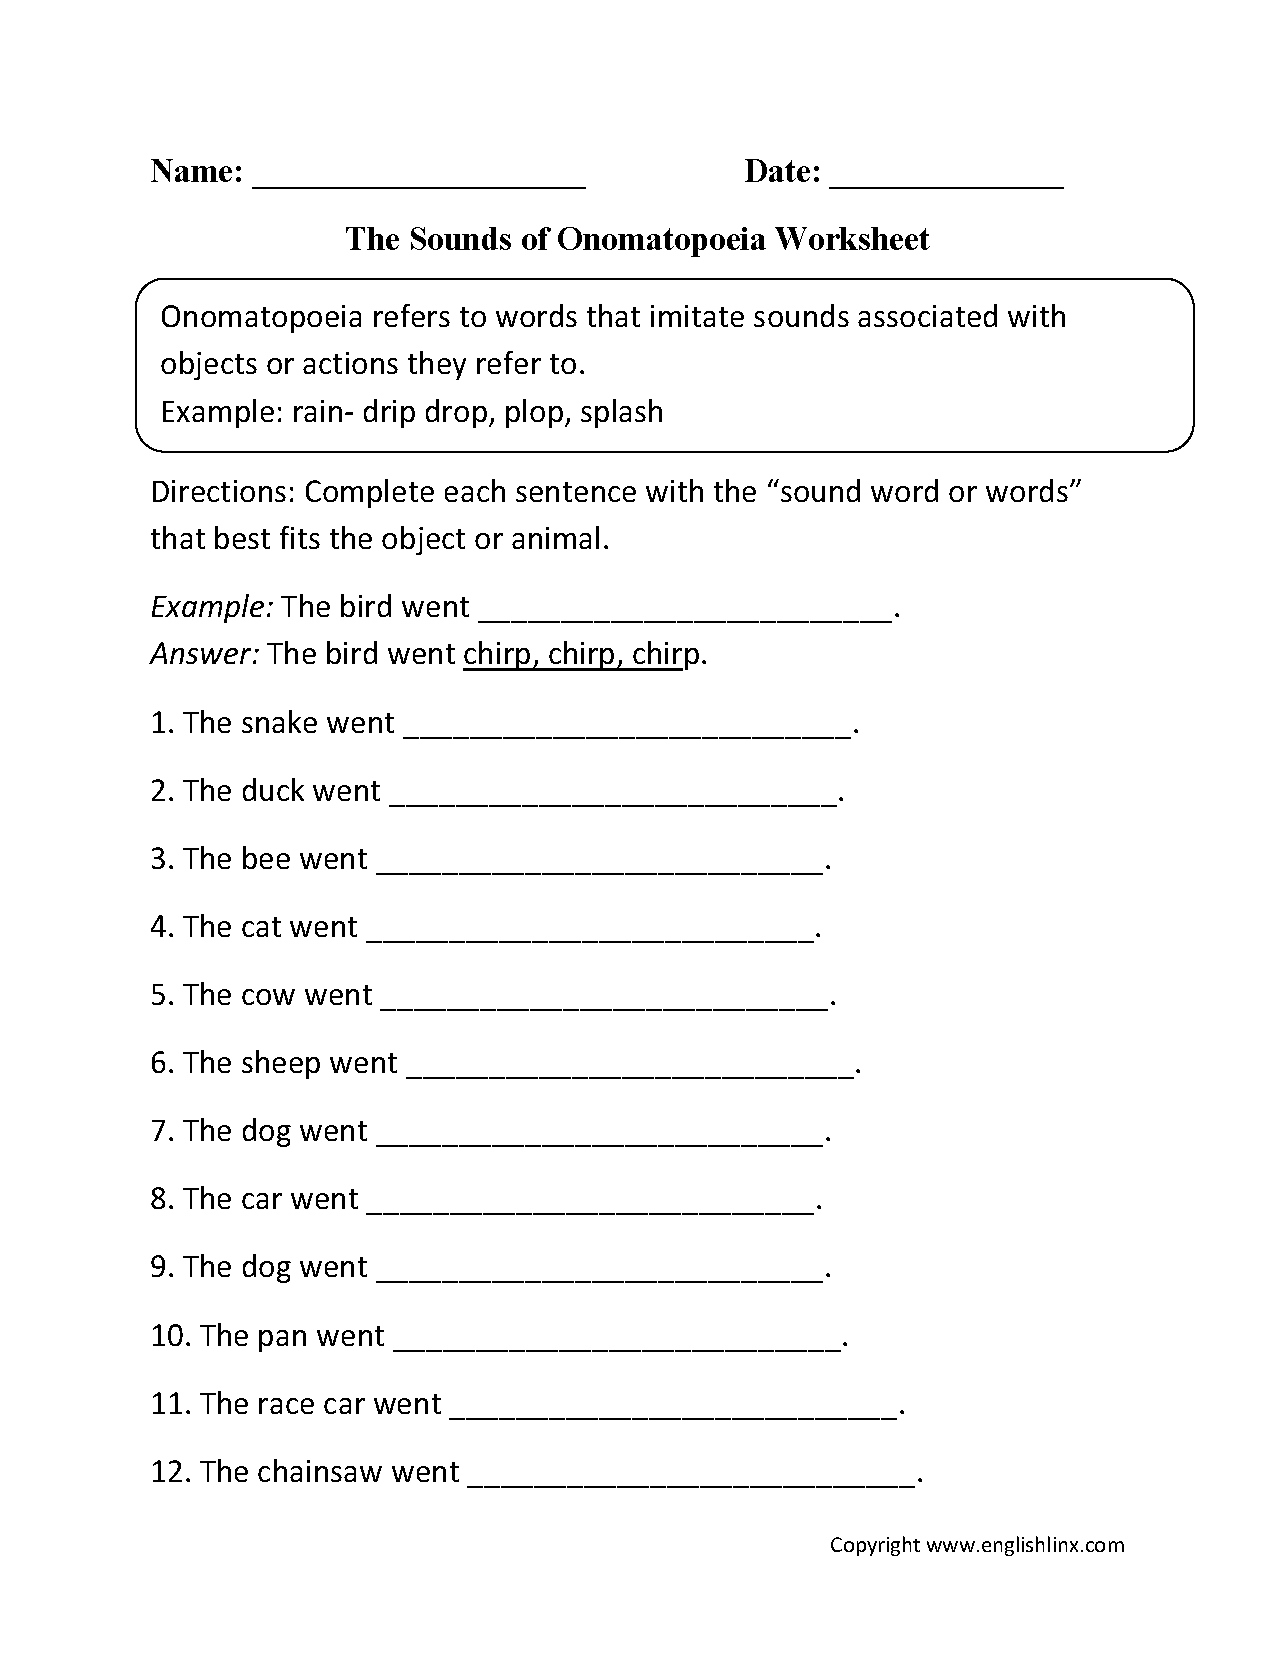 Aldiablosus  Marvelous Englishlinxcom  Onomatopoeia Worksheets With Heavenly Worksheet With Comely Math Worksheet Addition Also About Me Worksheets In Addition Mineral Mania Worksheet Answer Key And Halloween Puzzle Worksheets As Well As Attendance Worksheet Additionally Multiplication And Division Equations Worksheets From Englishlinxcom With Aldiablosus  Heavenly Englishlinxcom  Onomatopoeia Worksheets With Comely Worksheet And Marvelous Math Worksheet Addition Also About Me Worksheets In Addition Mineral Mania Worksheet Answer Key From Englishlinxcom